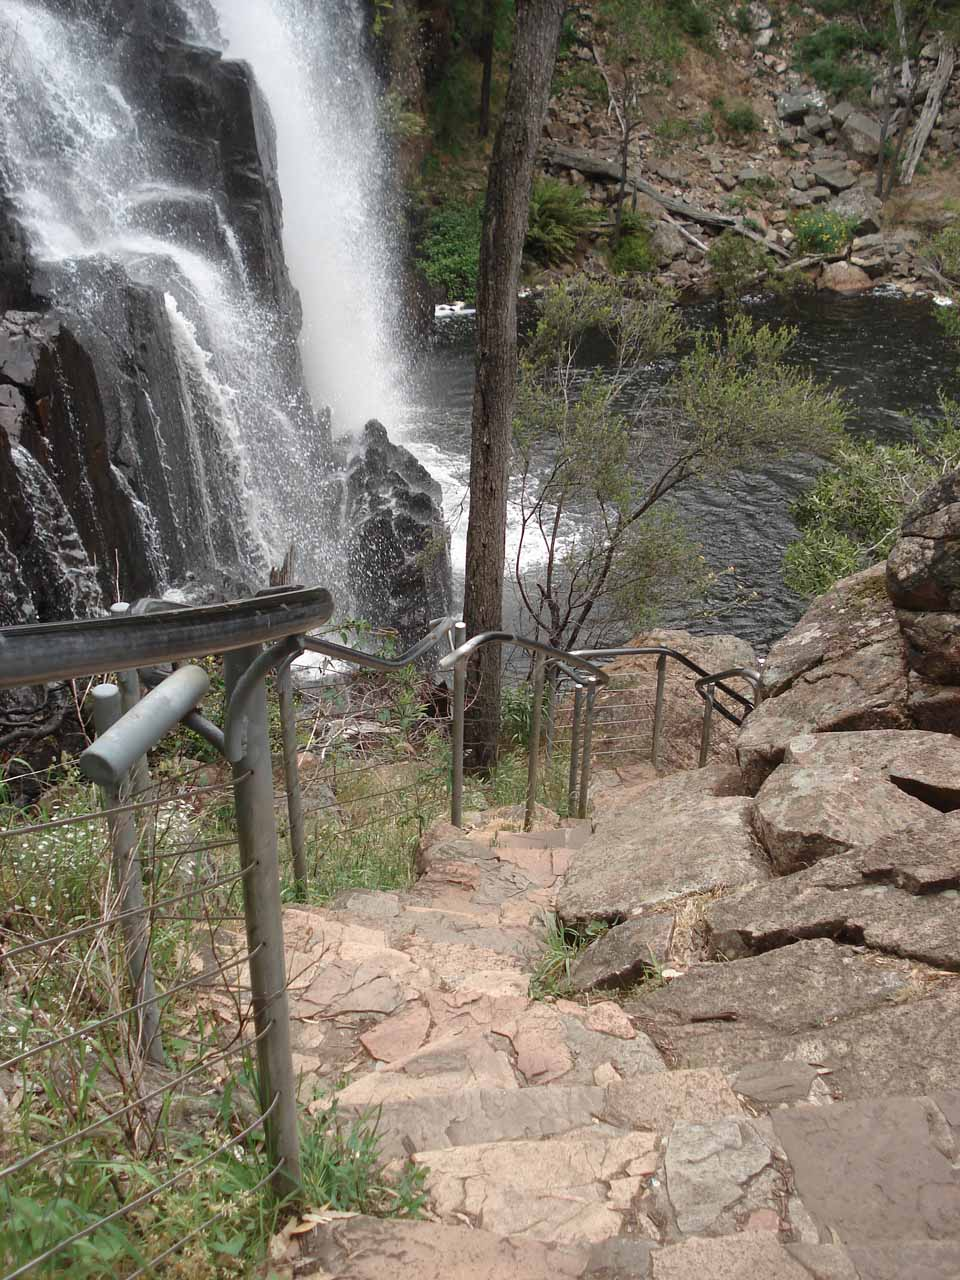 Looking down at the steps we had to take to make it down to the base of MacKenzie Falls